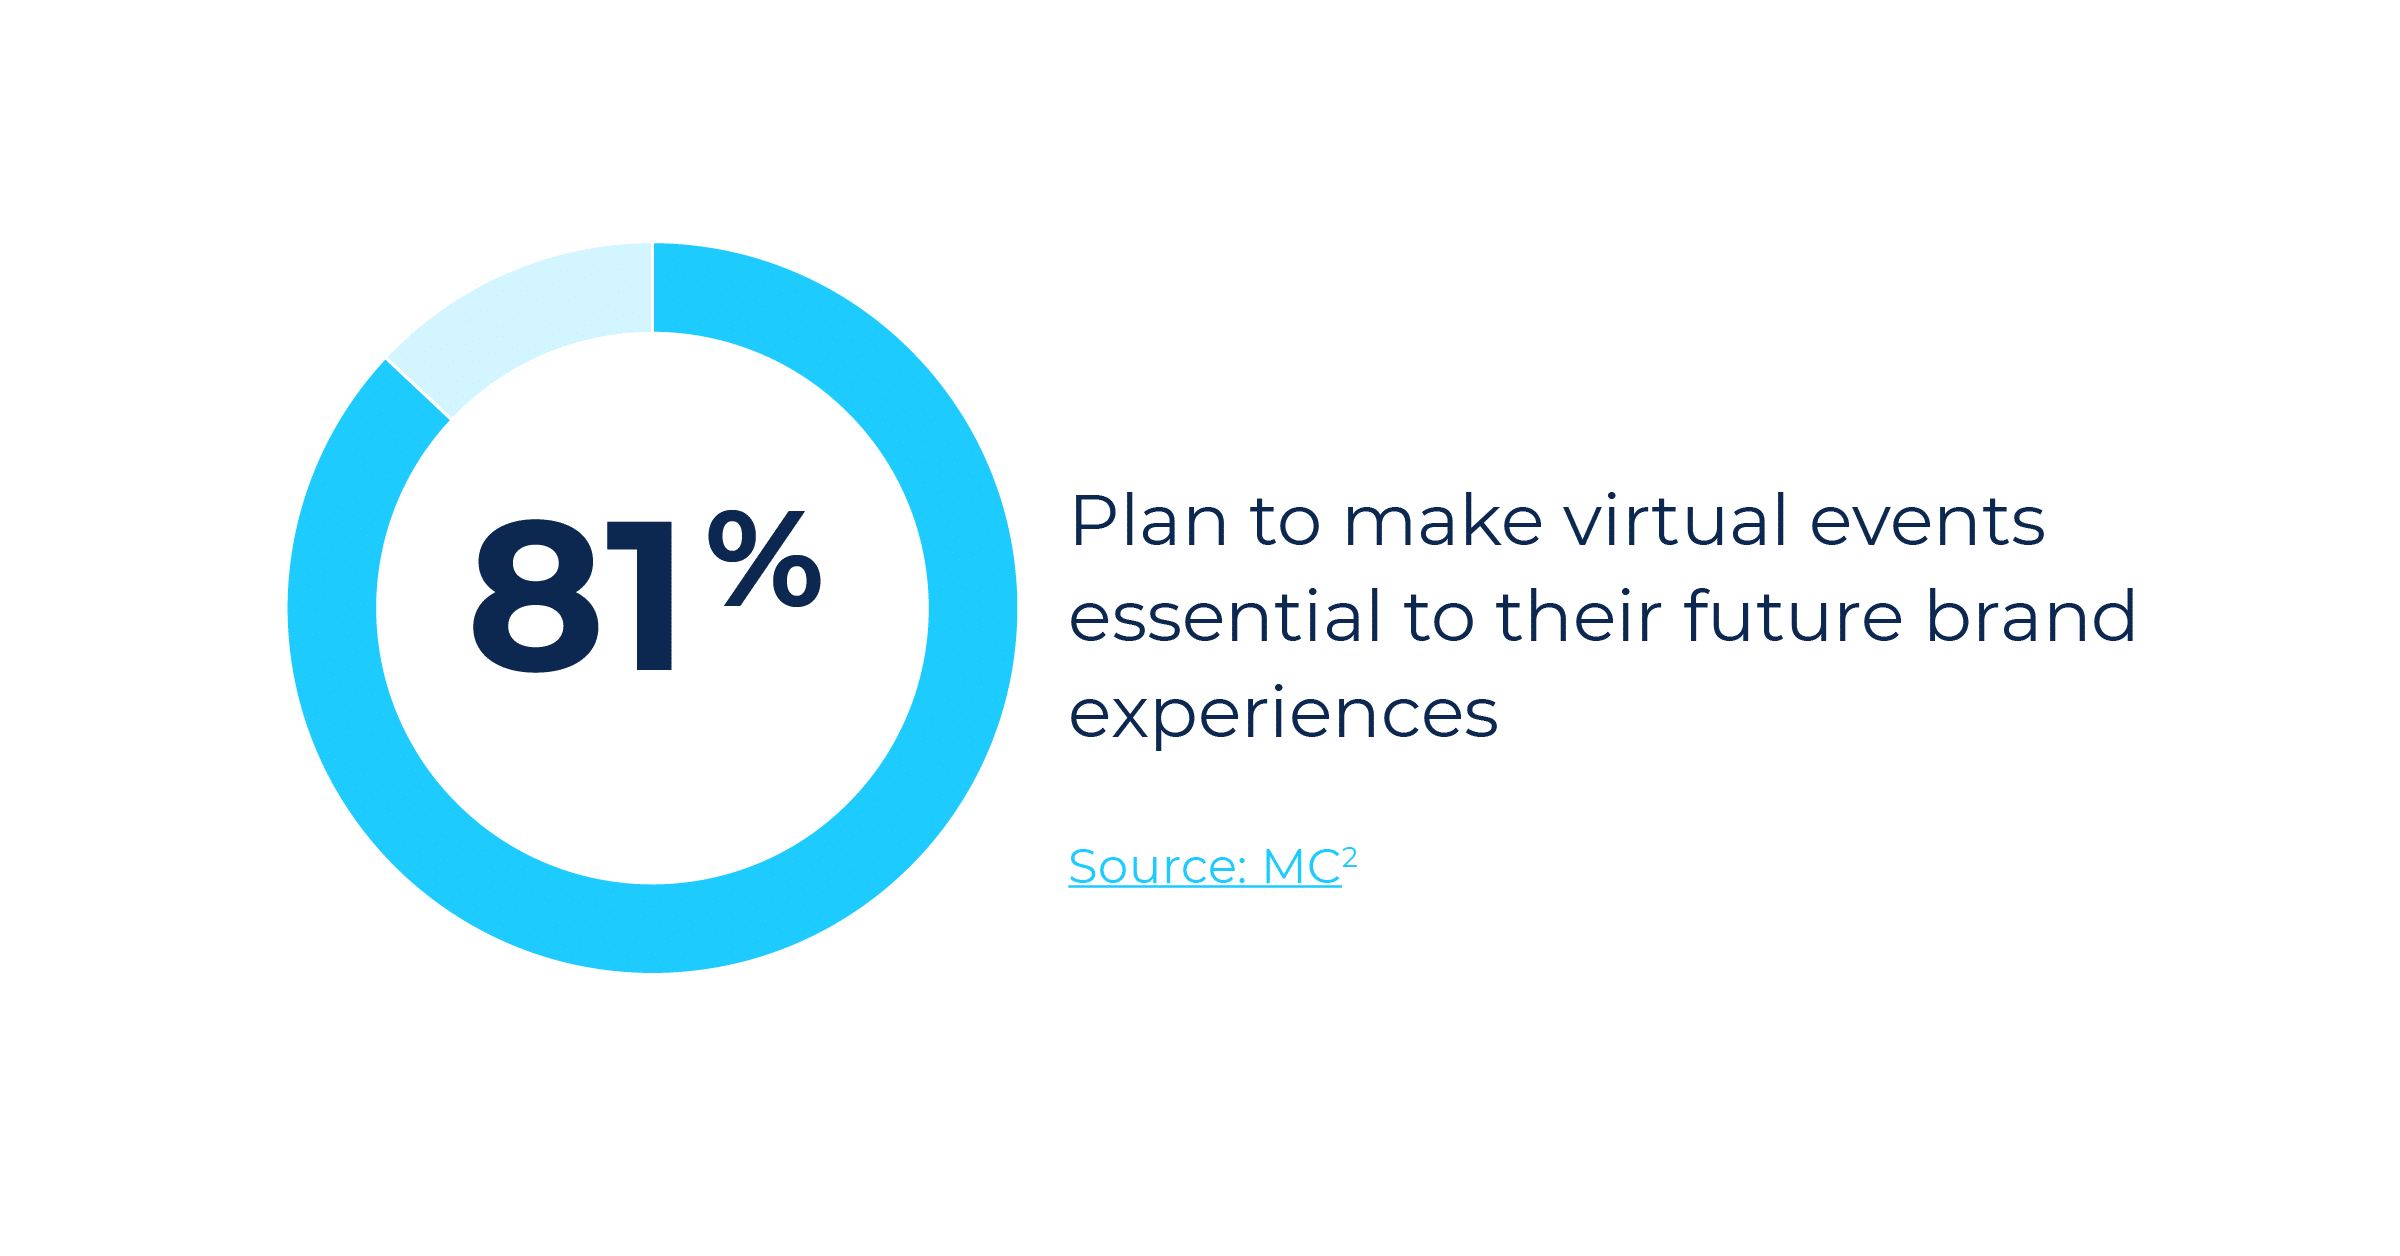 81% of event marketers plan to make virtual events essential to their future brand experiences.